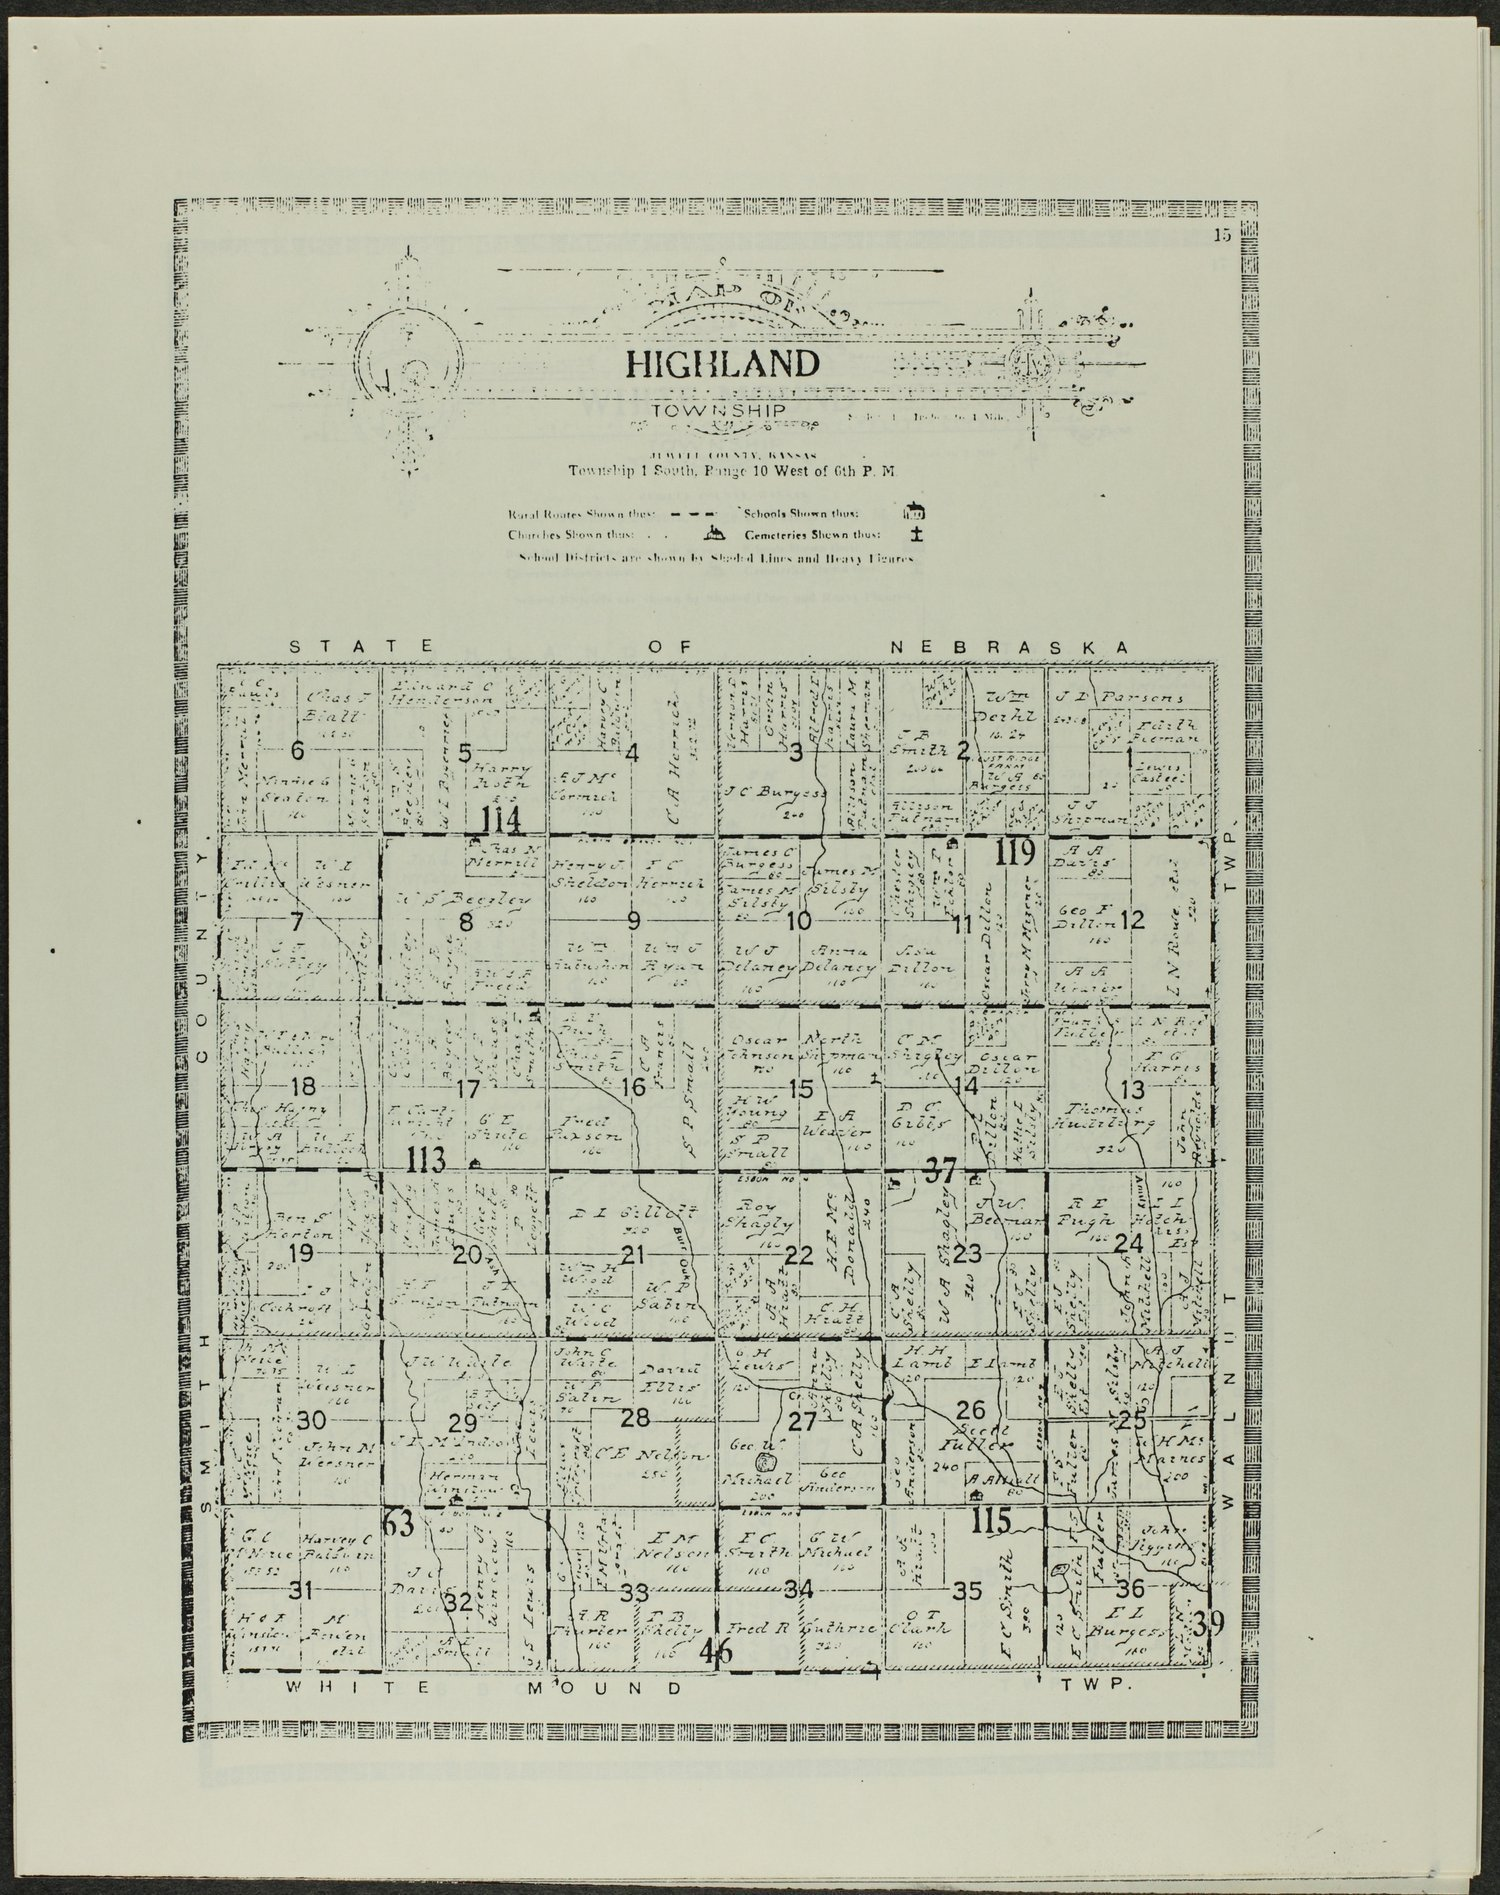 Atlas and plat book of Jewell County, Kansas - 15